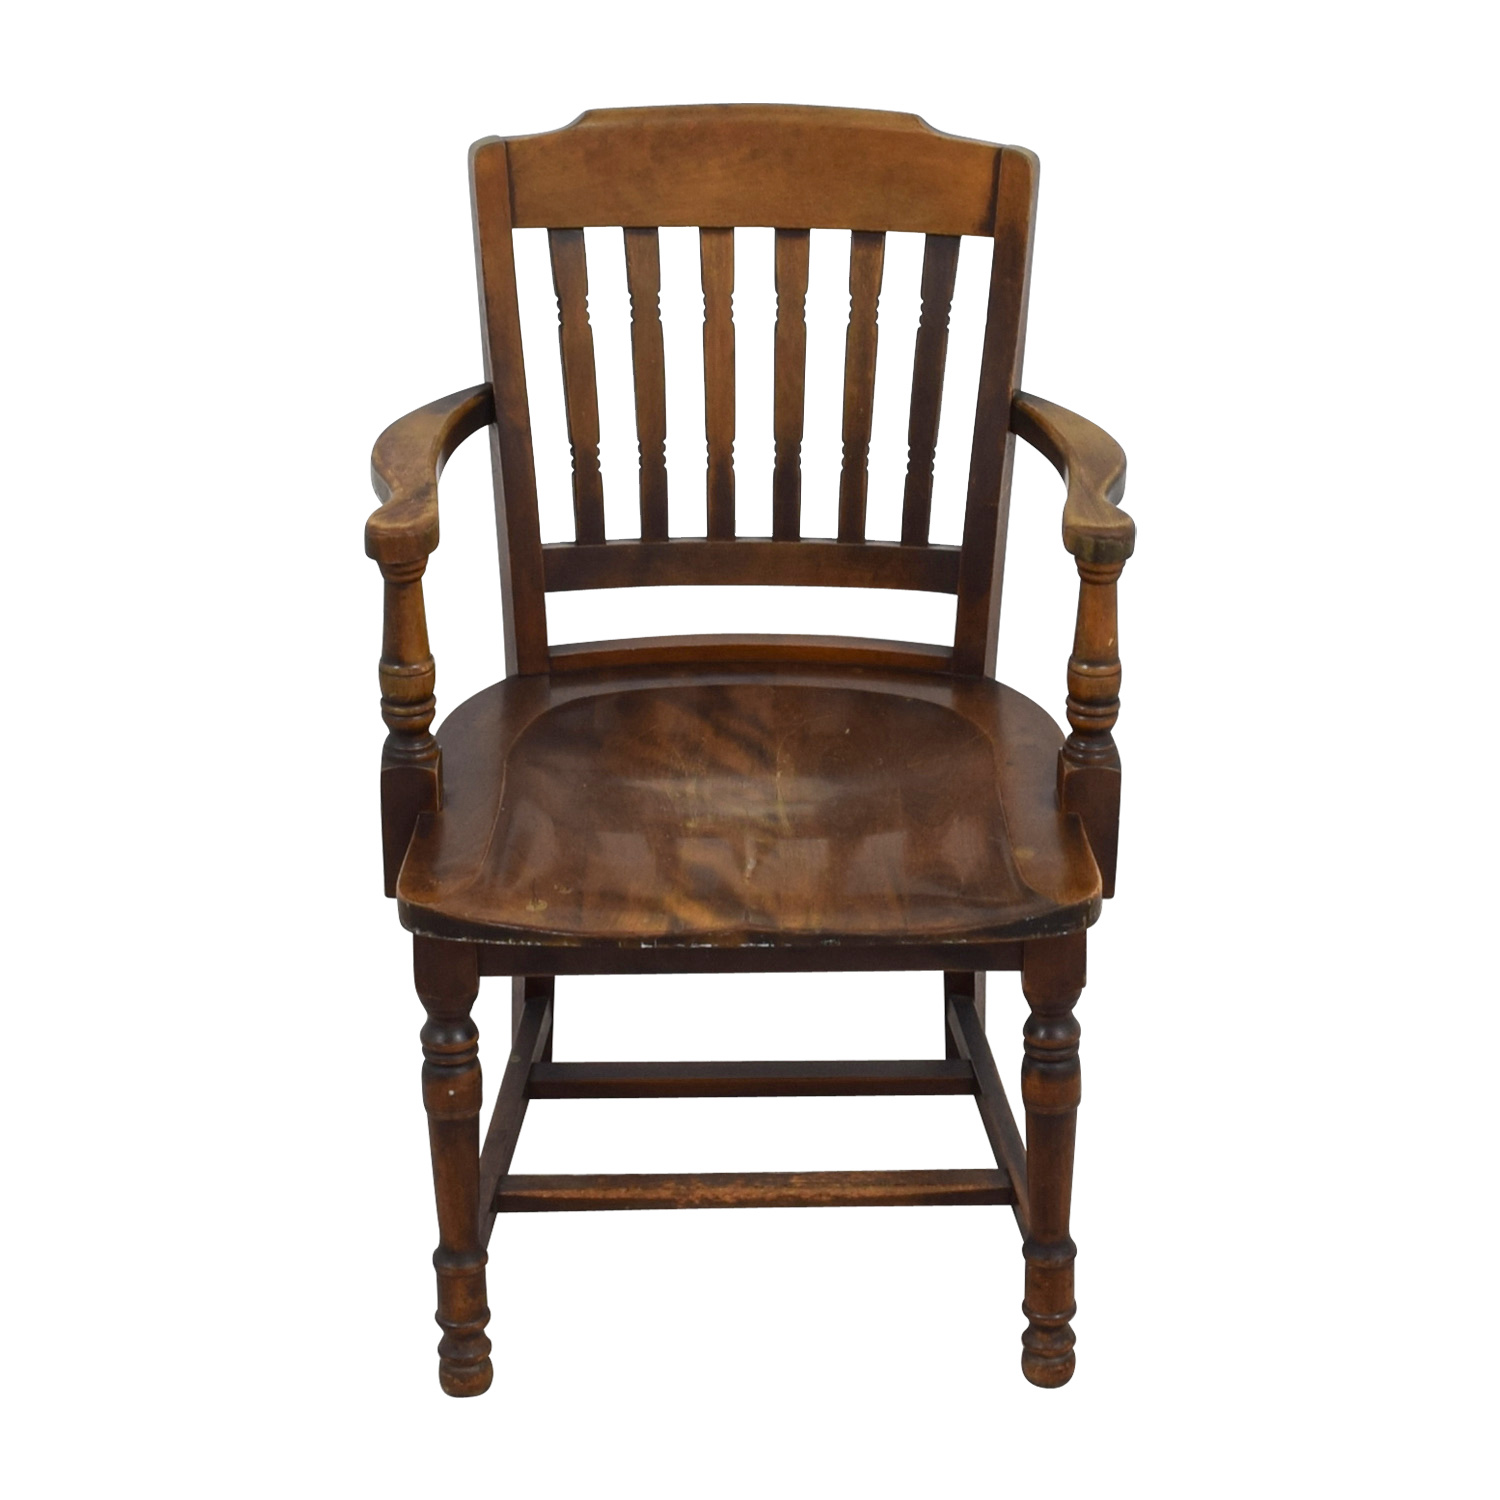 Antique wooden chair furniture